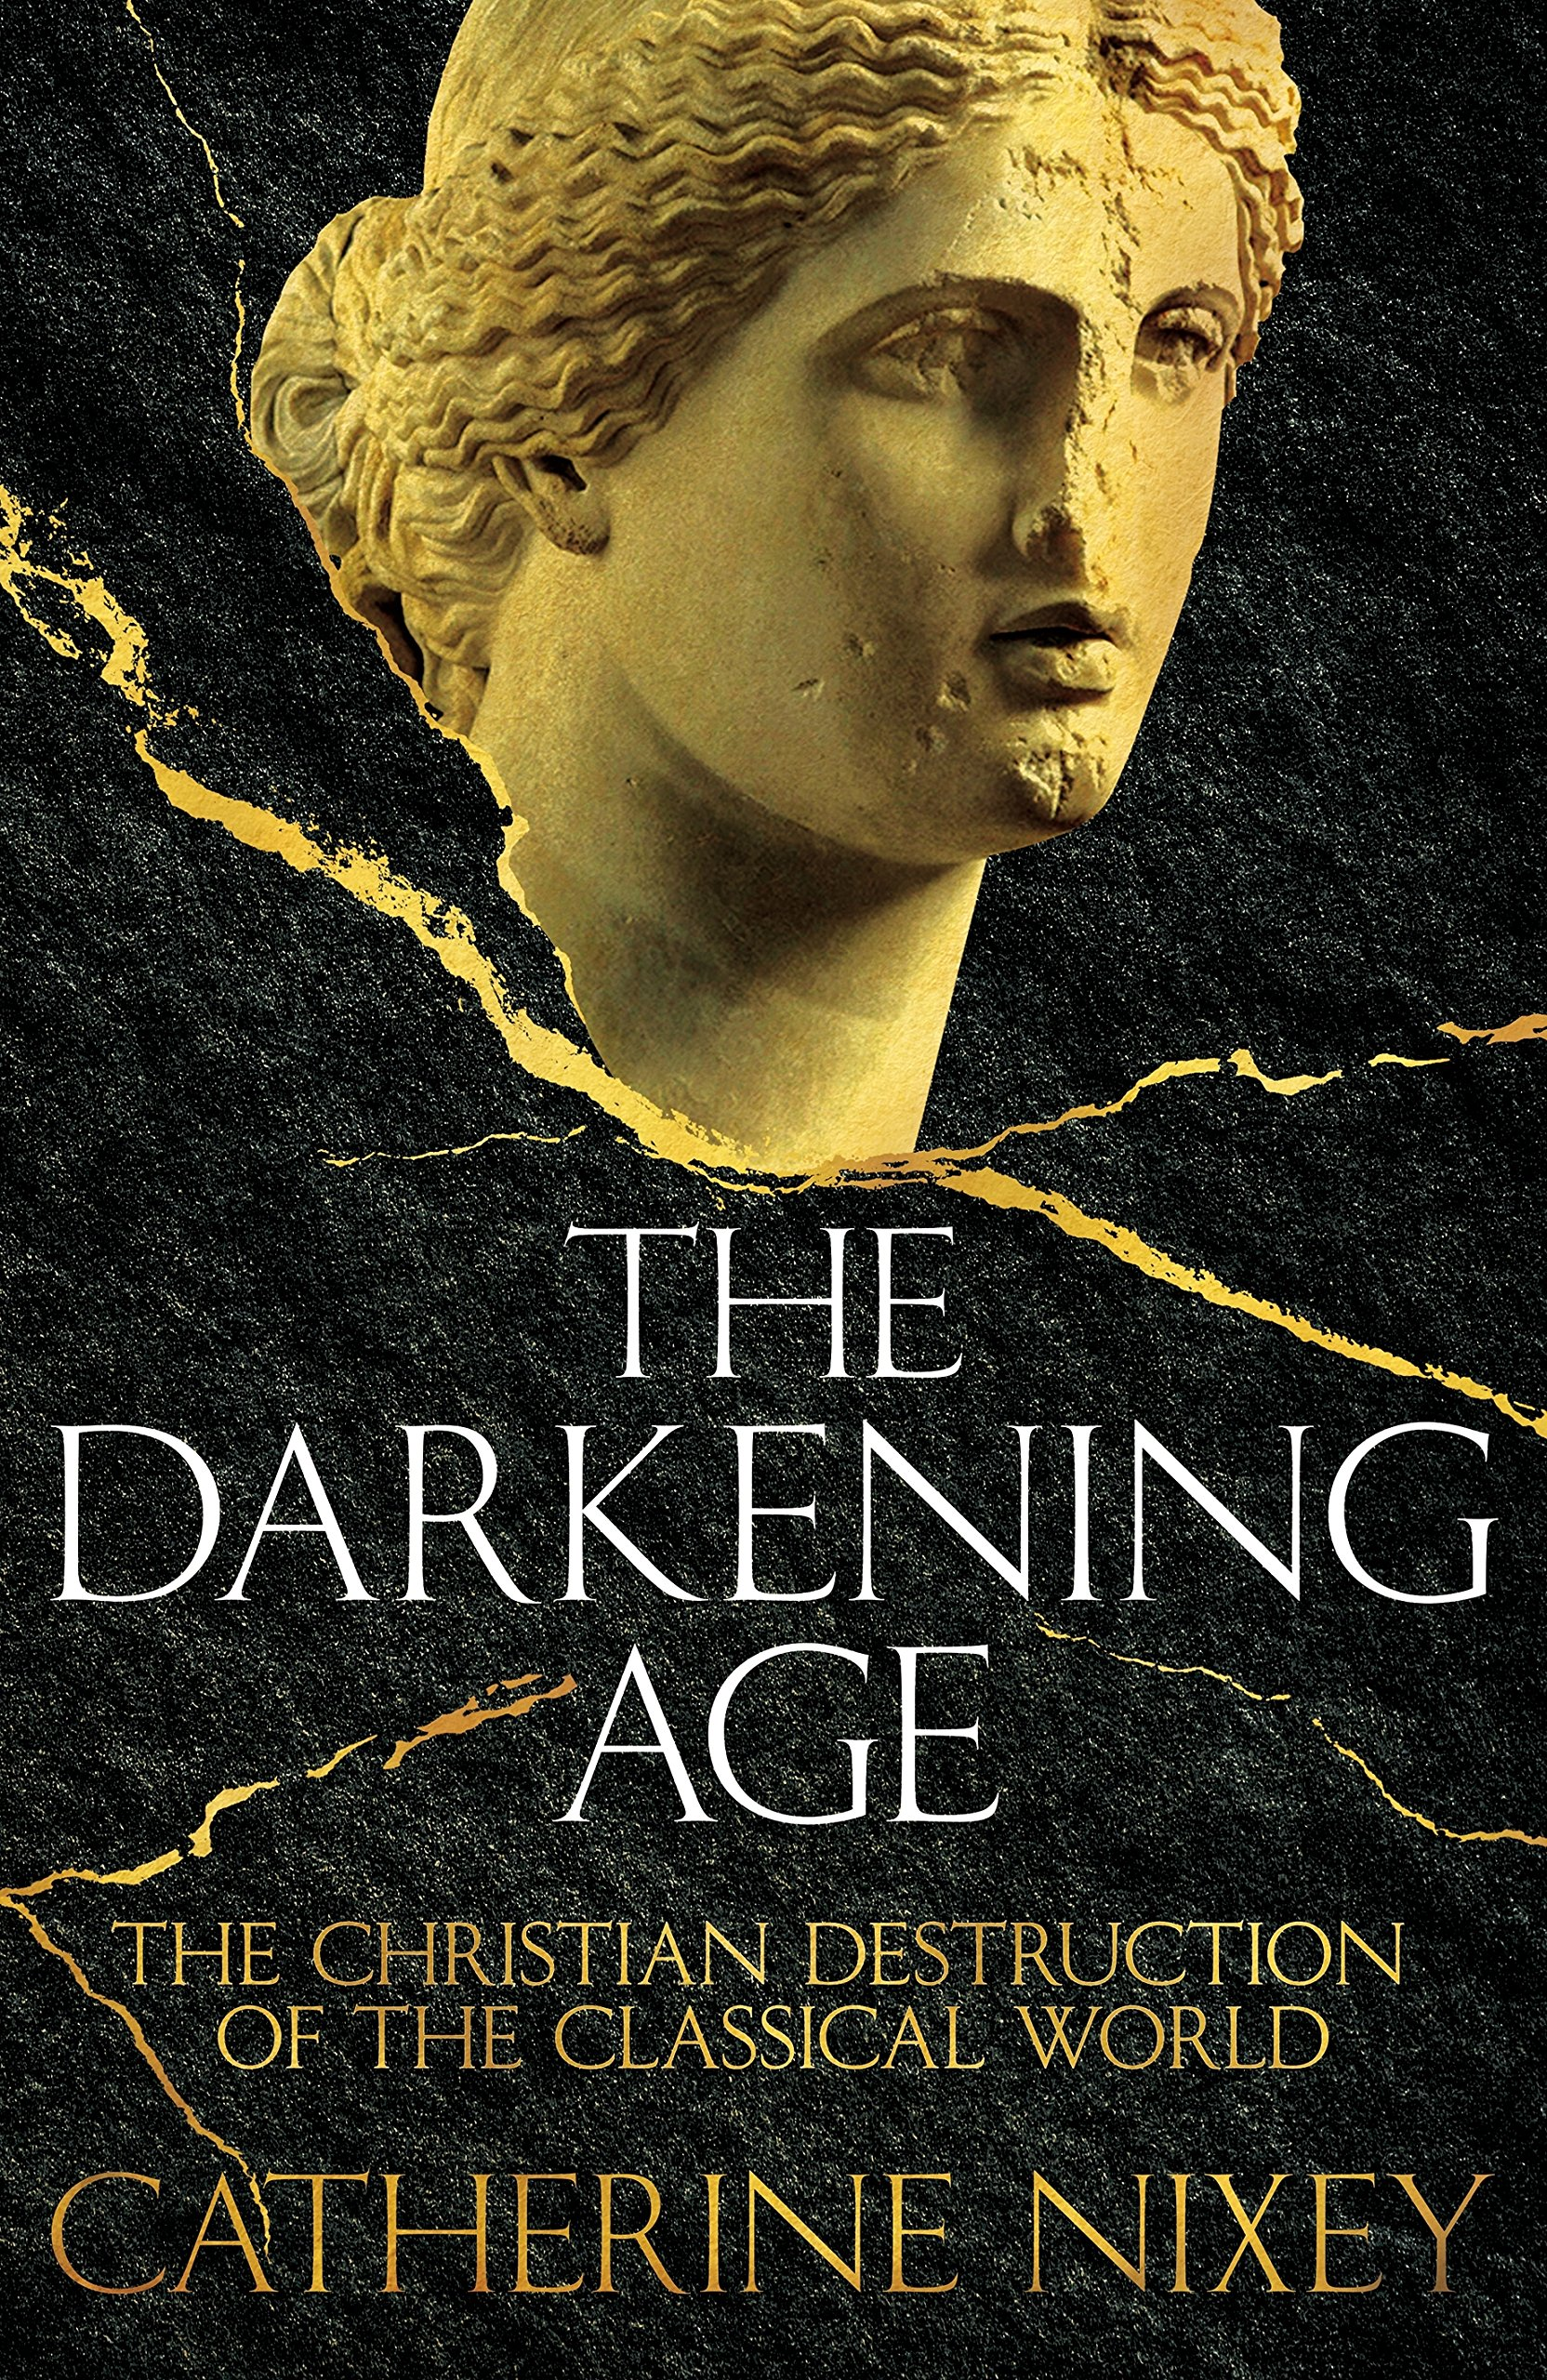 The Christian Destruction of the Classical World